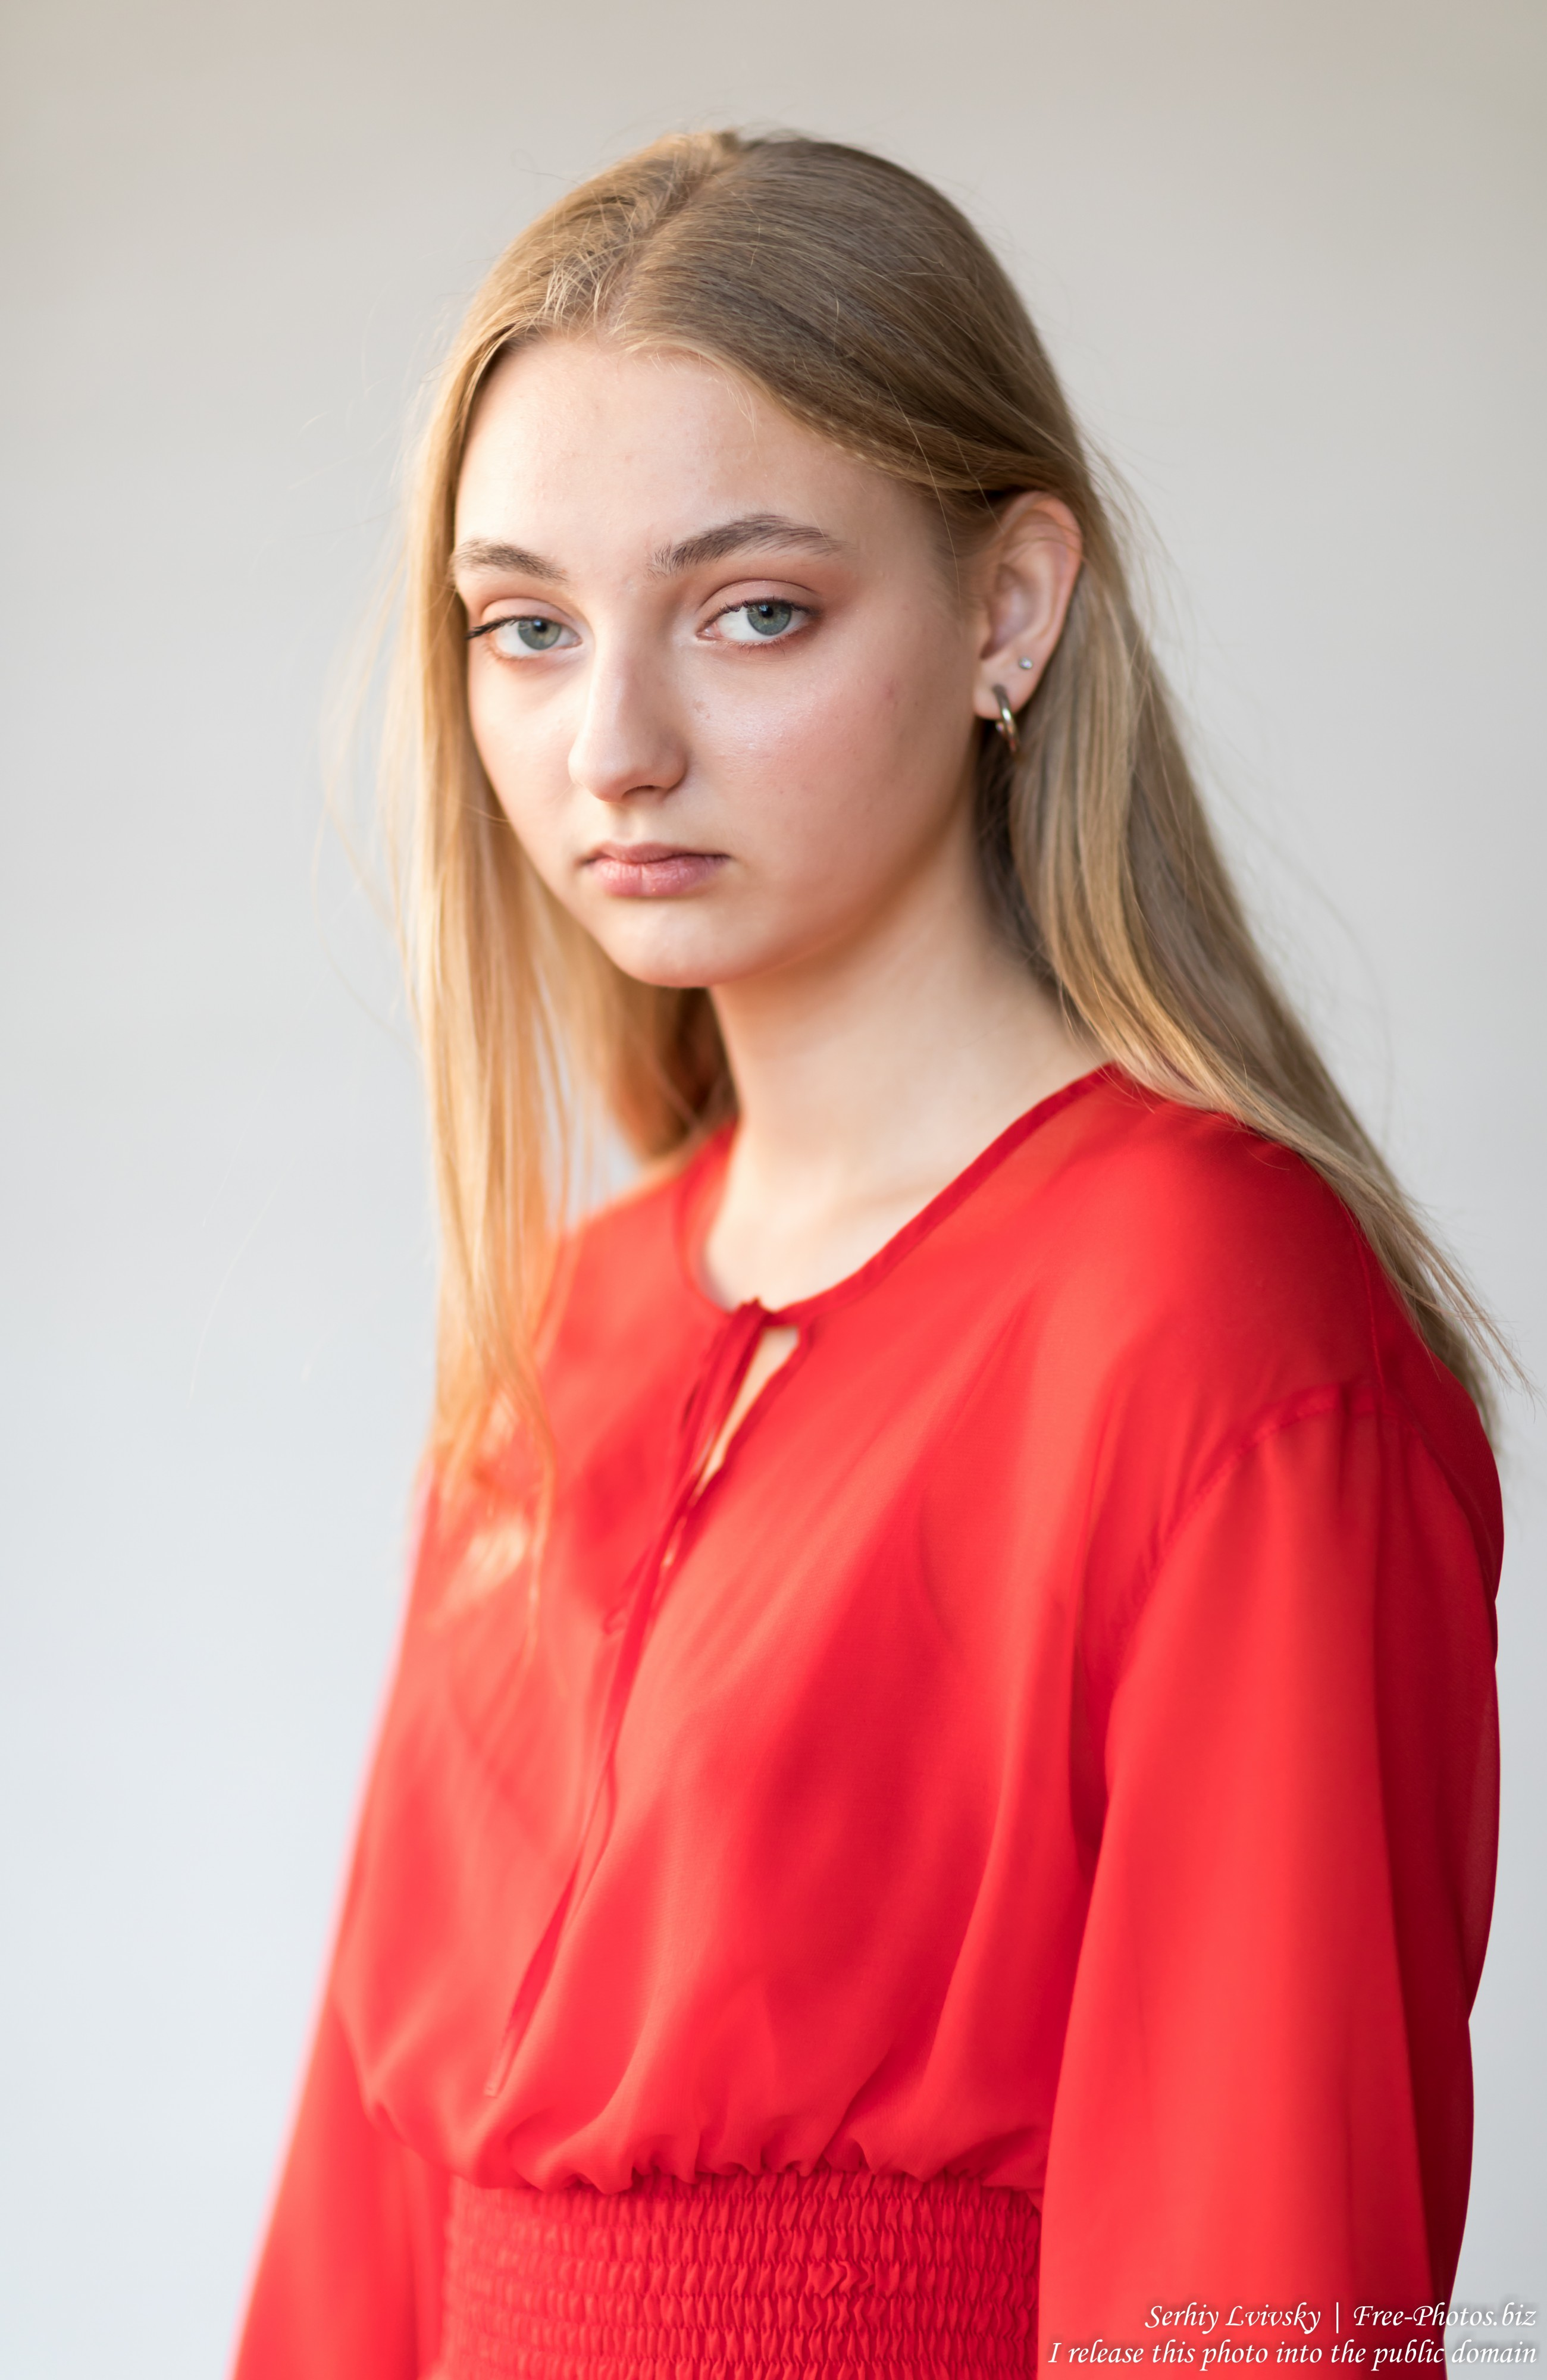 Nastia - a 16-year-old natural blonde girl photographed in September 2019 by Serhiy Lvivsky, picture 5